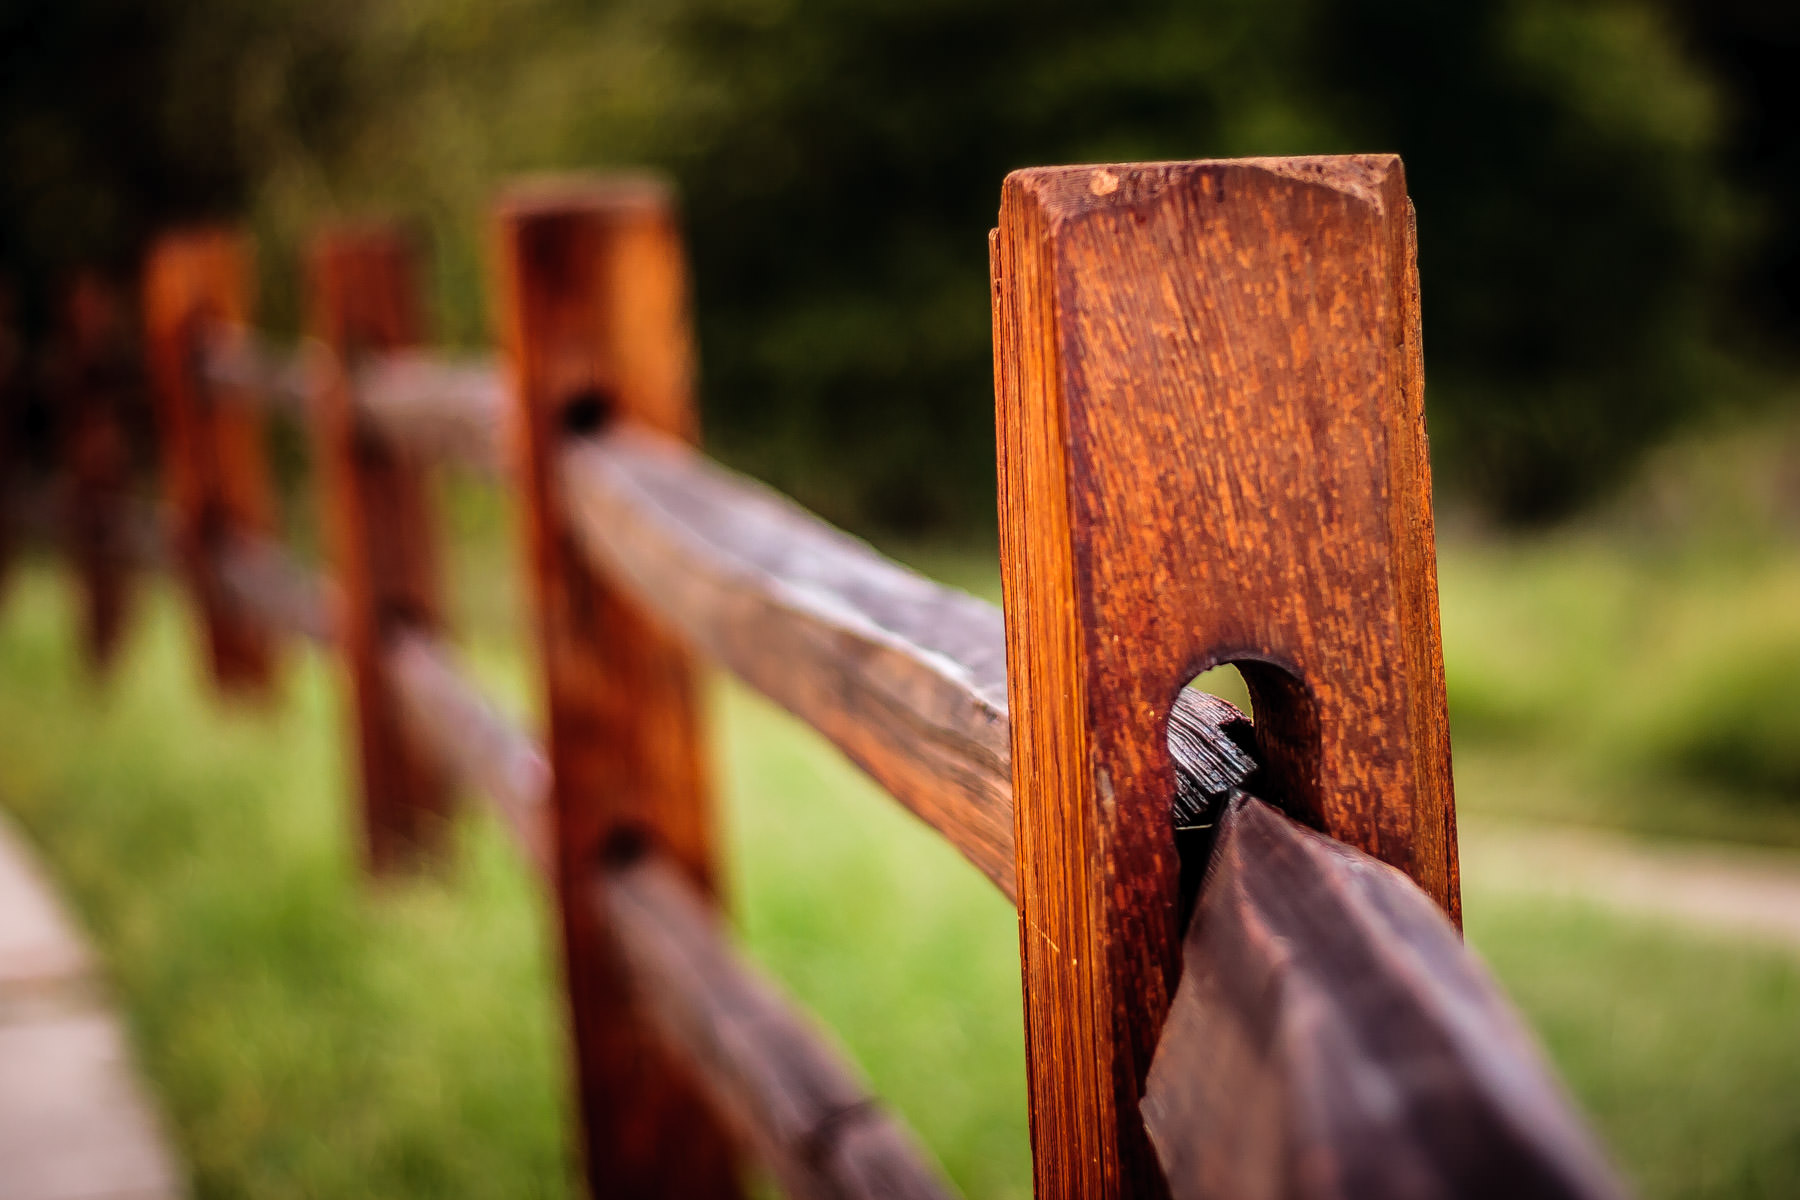 A fence at Arbor Hills Nature Preserve, Plano, Texas.